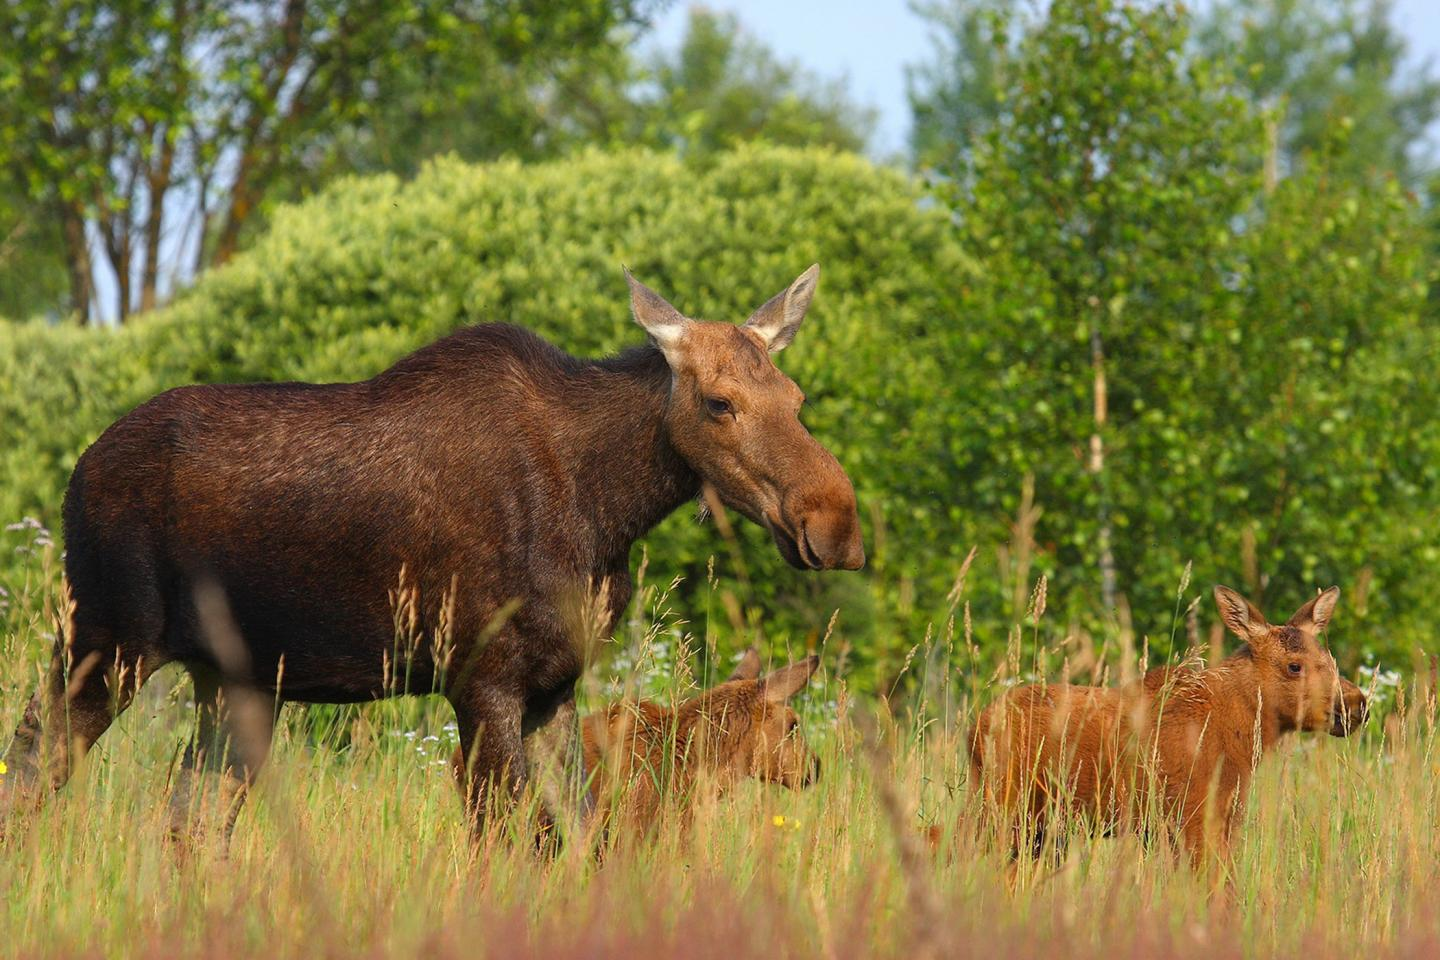 There are thriving wildlife populations in Chernobyl